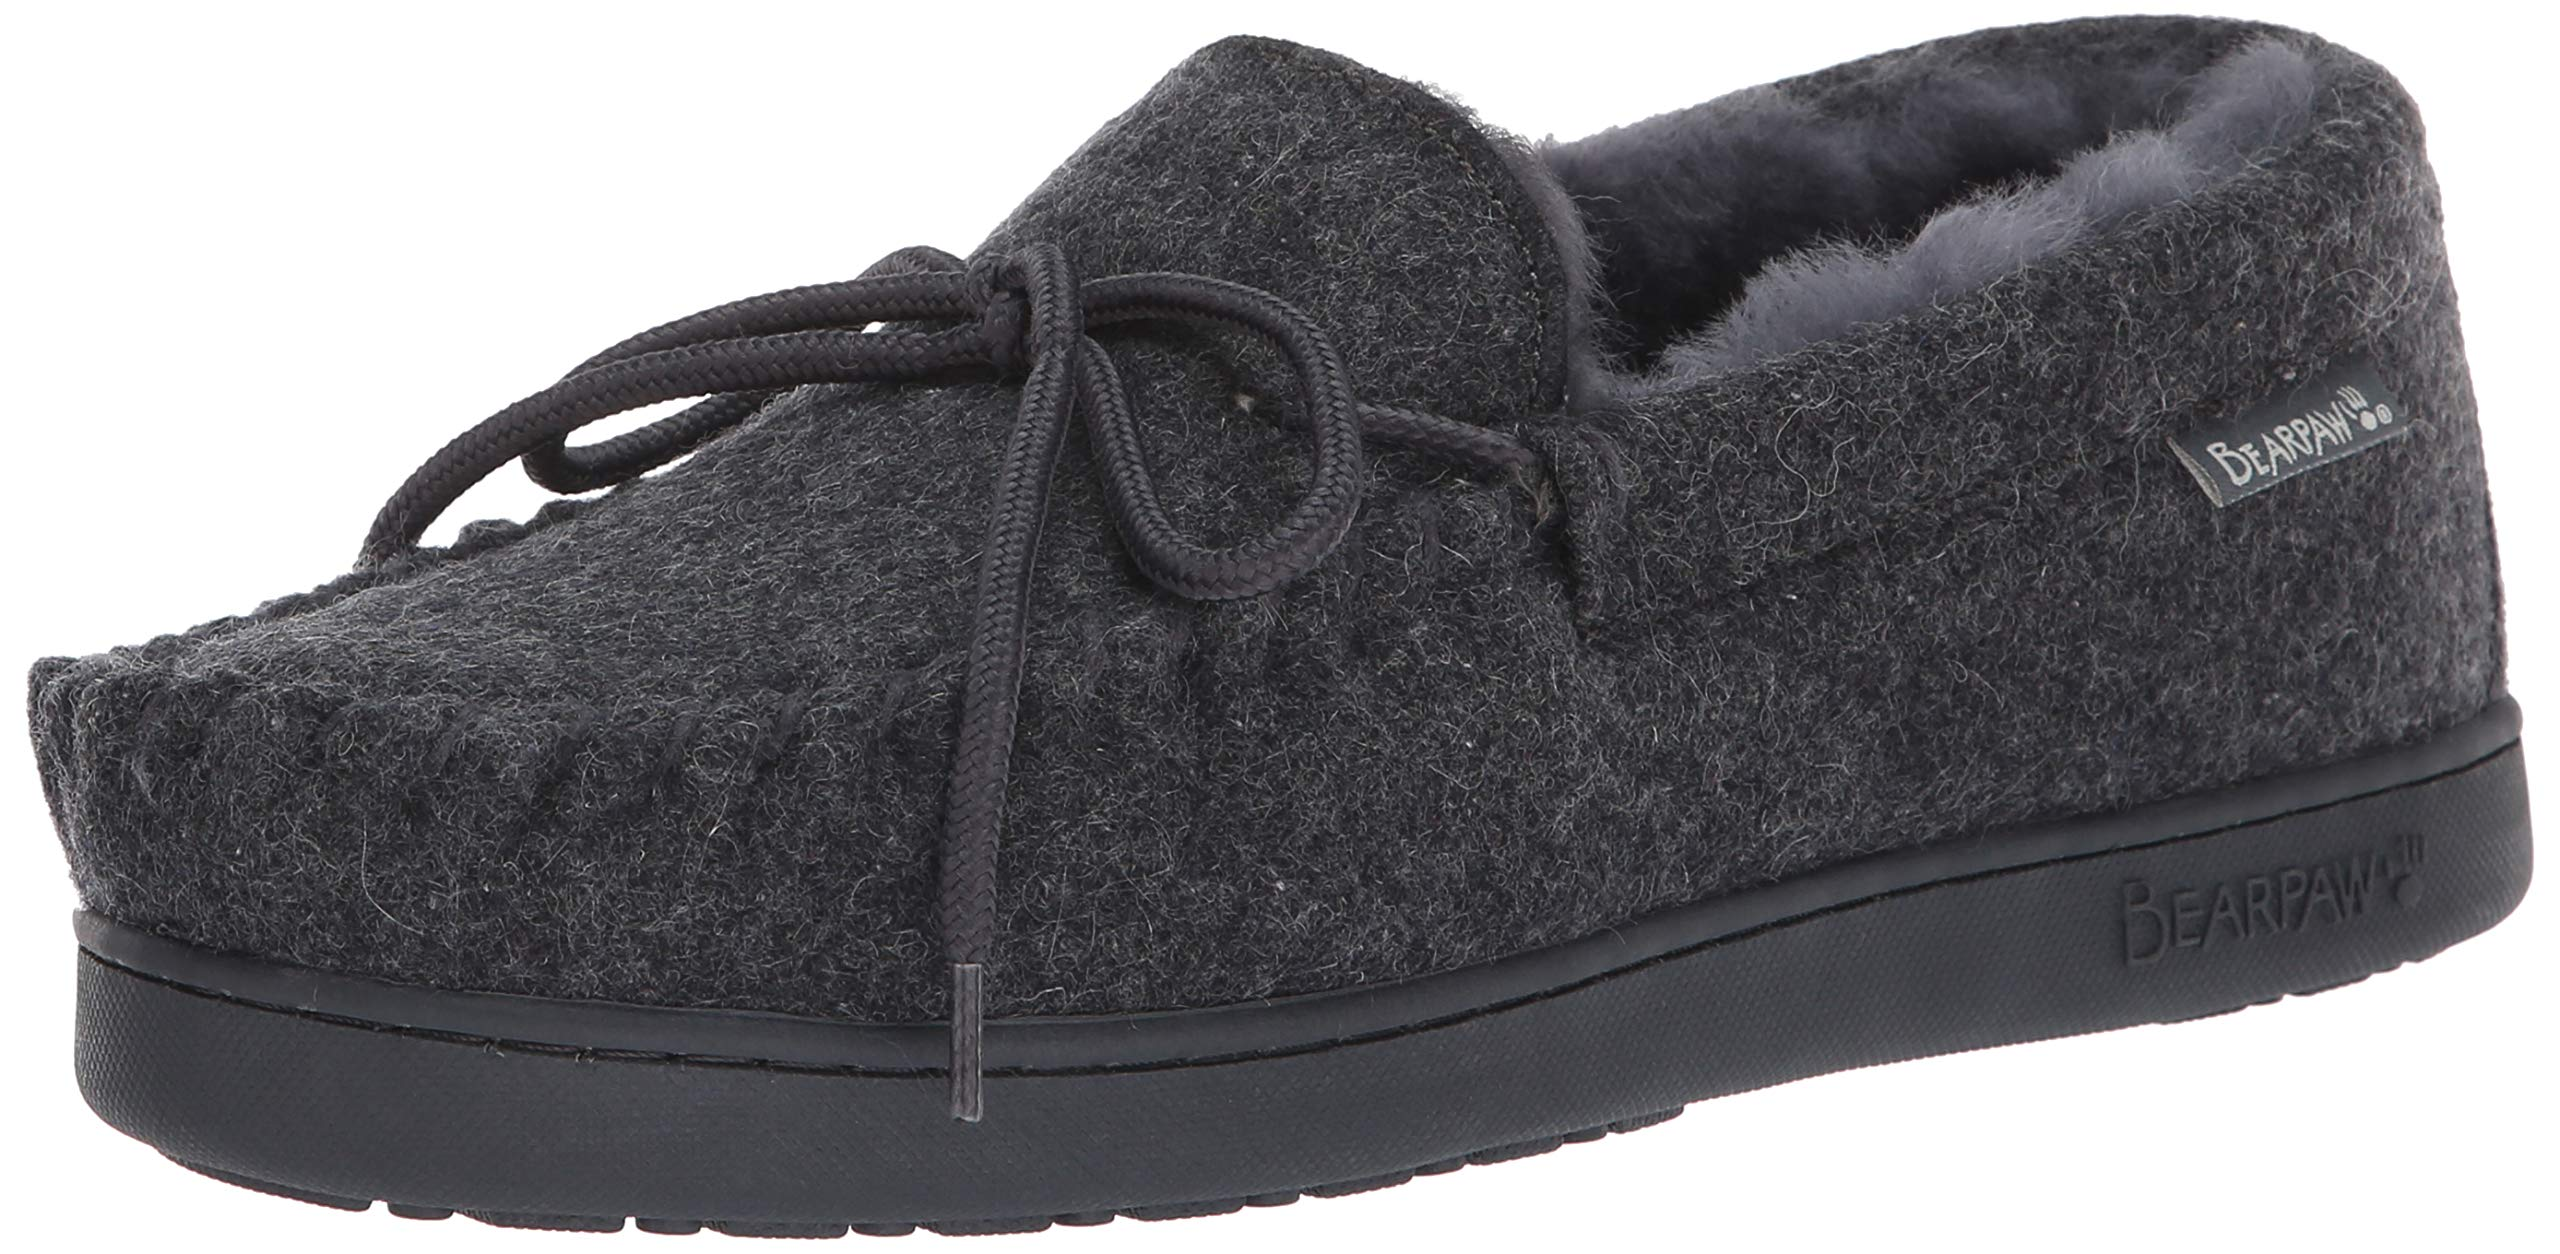 BEARPAW - Mens Moc Ii Solids Slippers, Size: 14 D(M) US, Color: Gray Ii